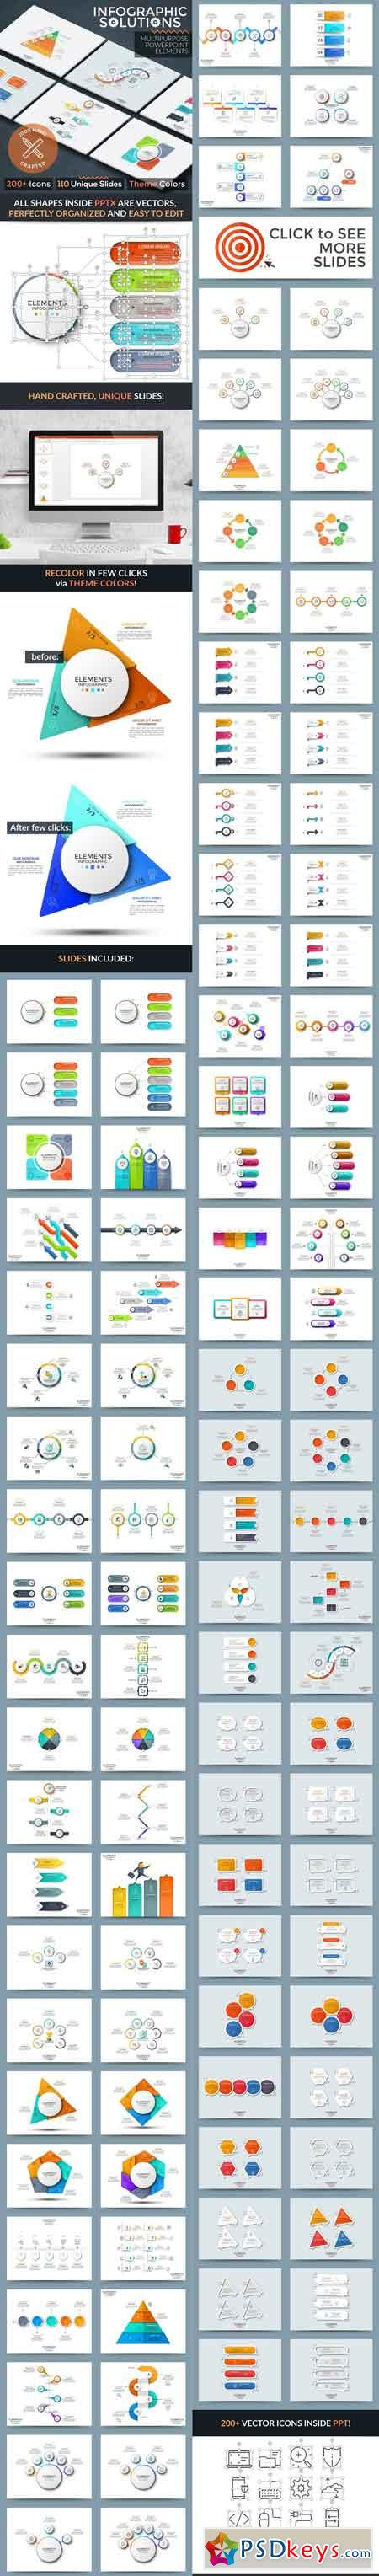 Infographic Solutions. Powerpoint Template 22087401